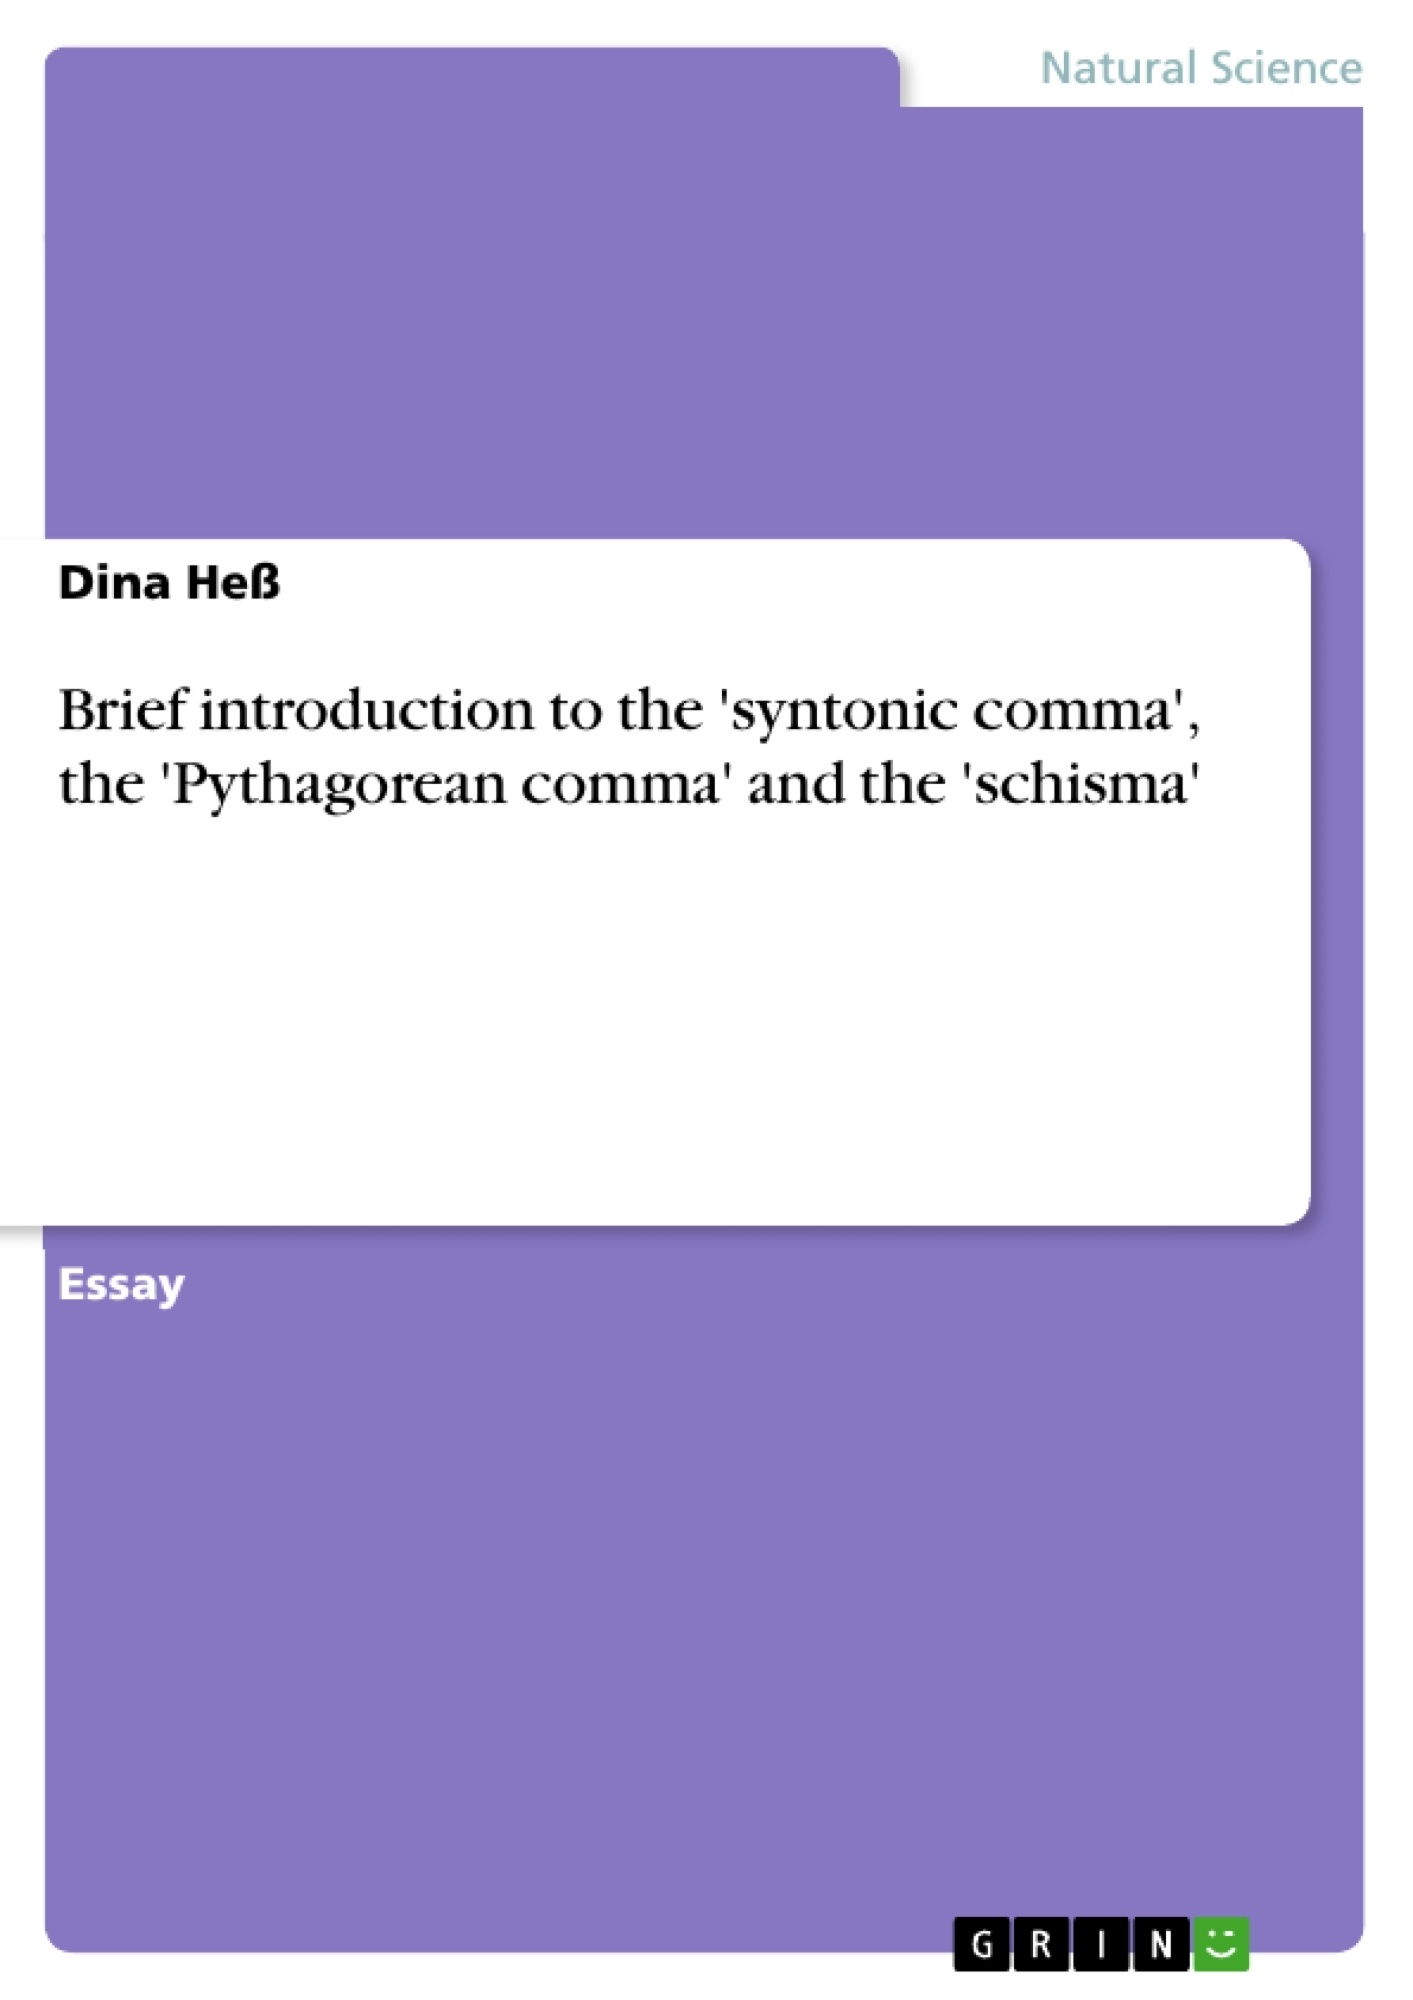 Title: Brief introduction to the 'syntonic comma', the 'Pythagorean comma' and the 'schisma'